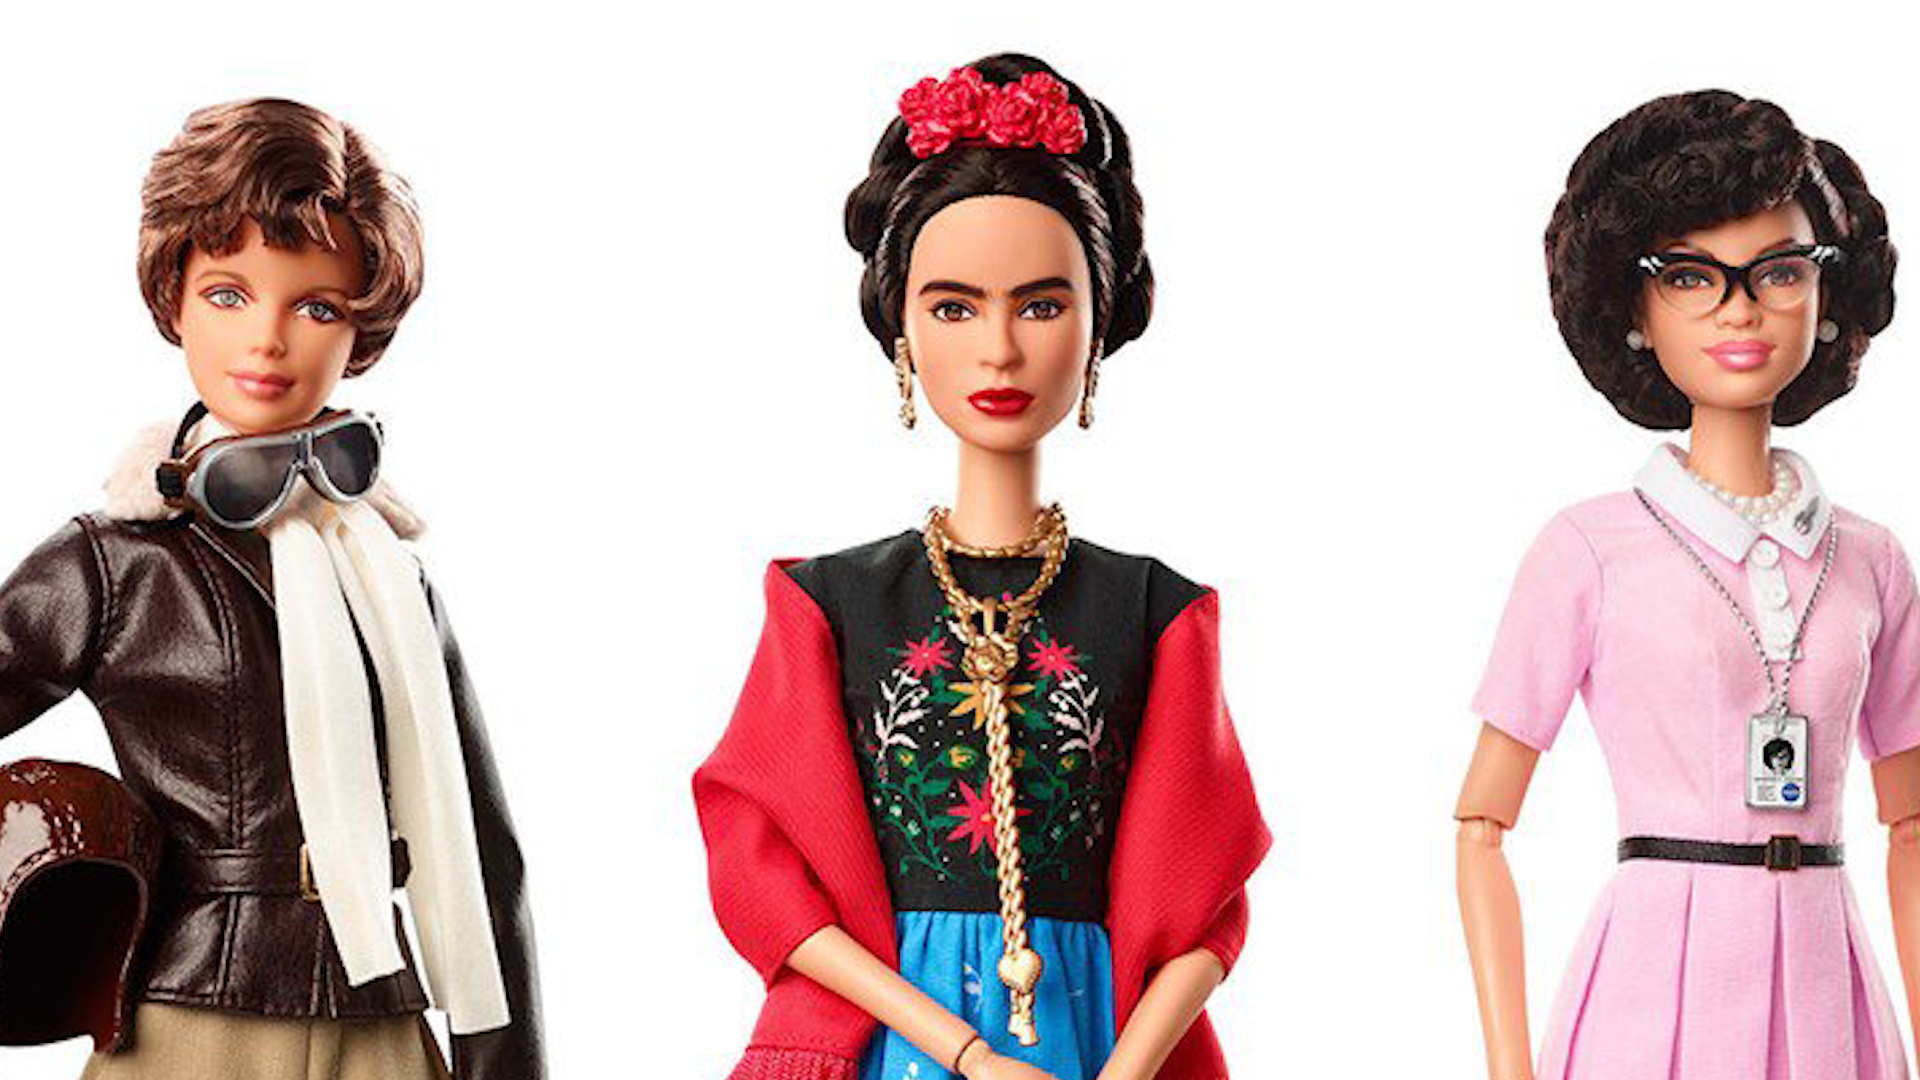 How Frida Kahlo Is Inspiring Wedding Dresses - For Both Brides And Guests